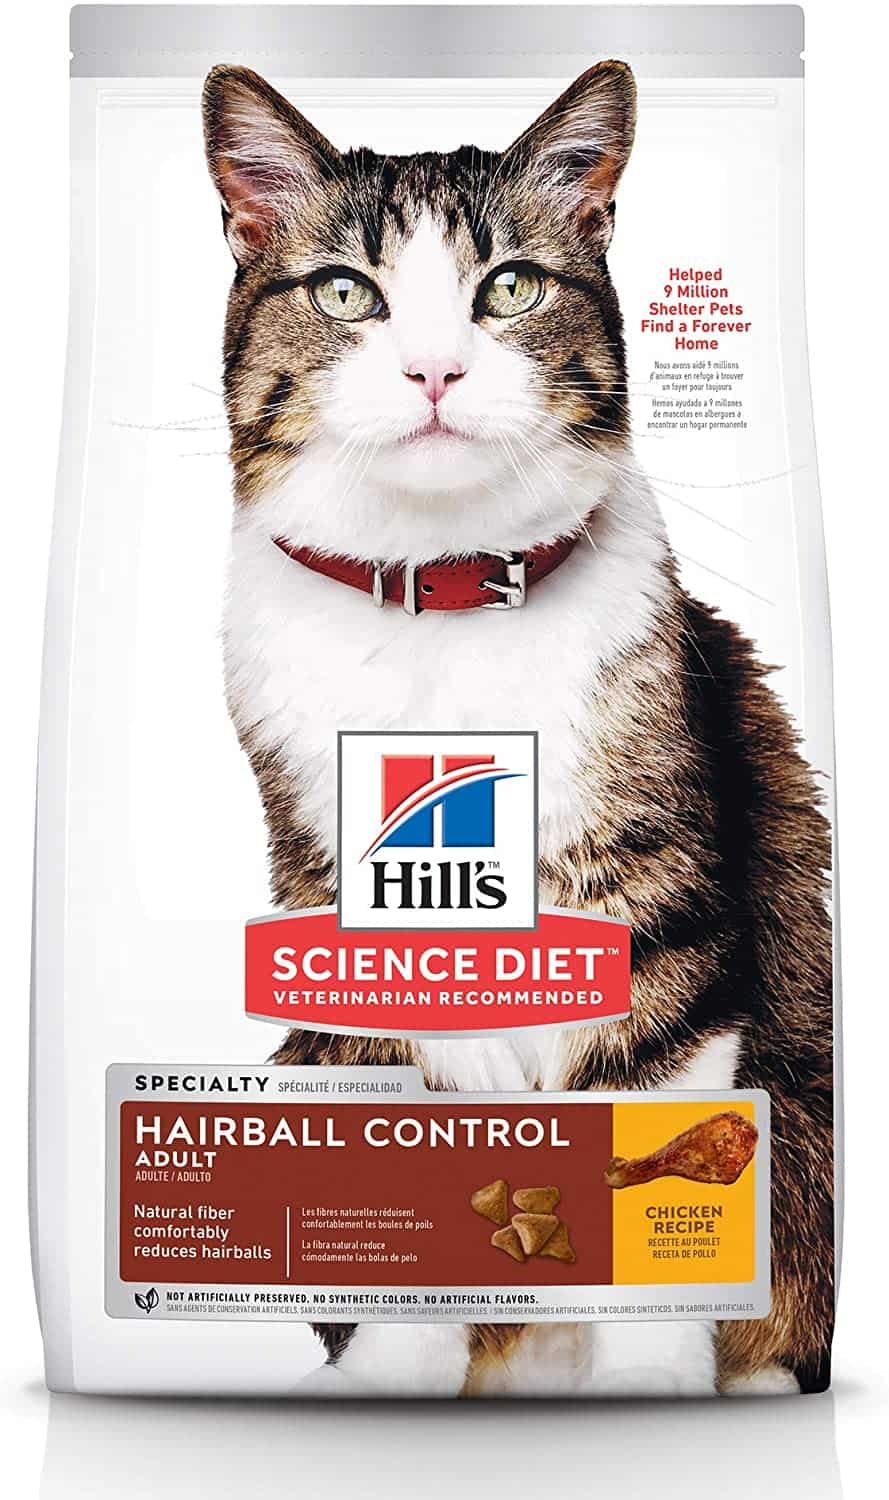 hill's science diet food